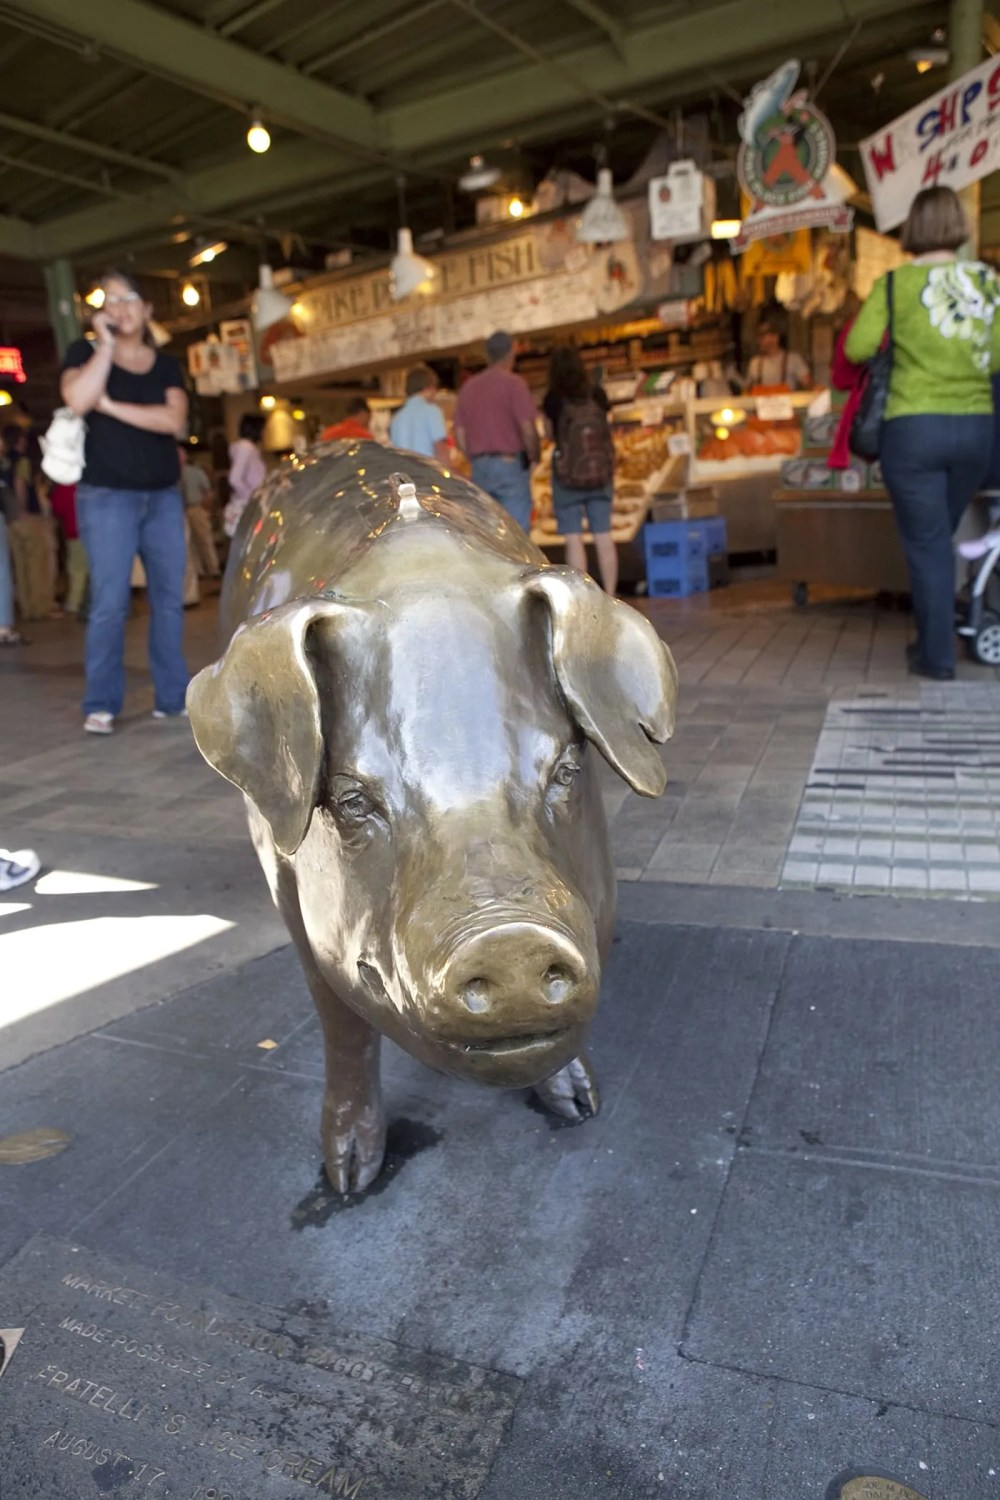 Rachel the Pig at Pike Place Market in Seattle, Washington